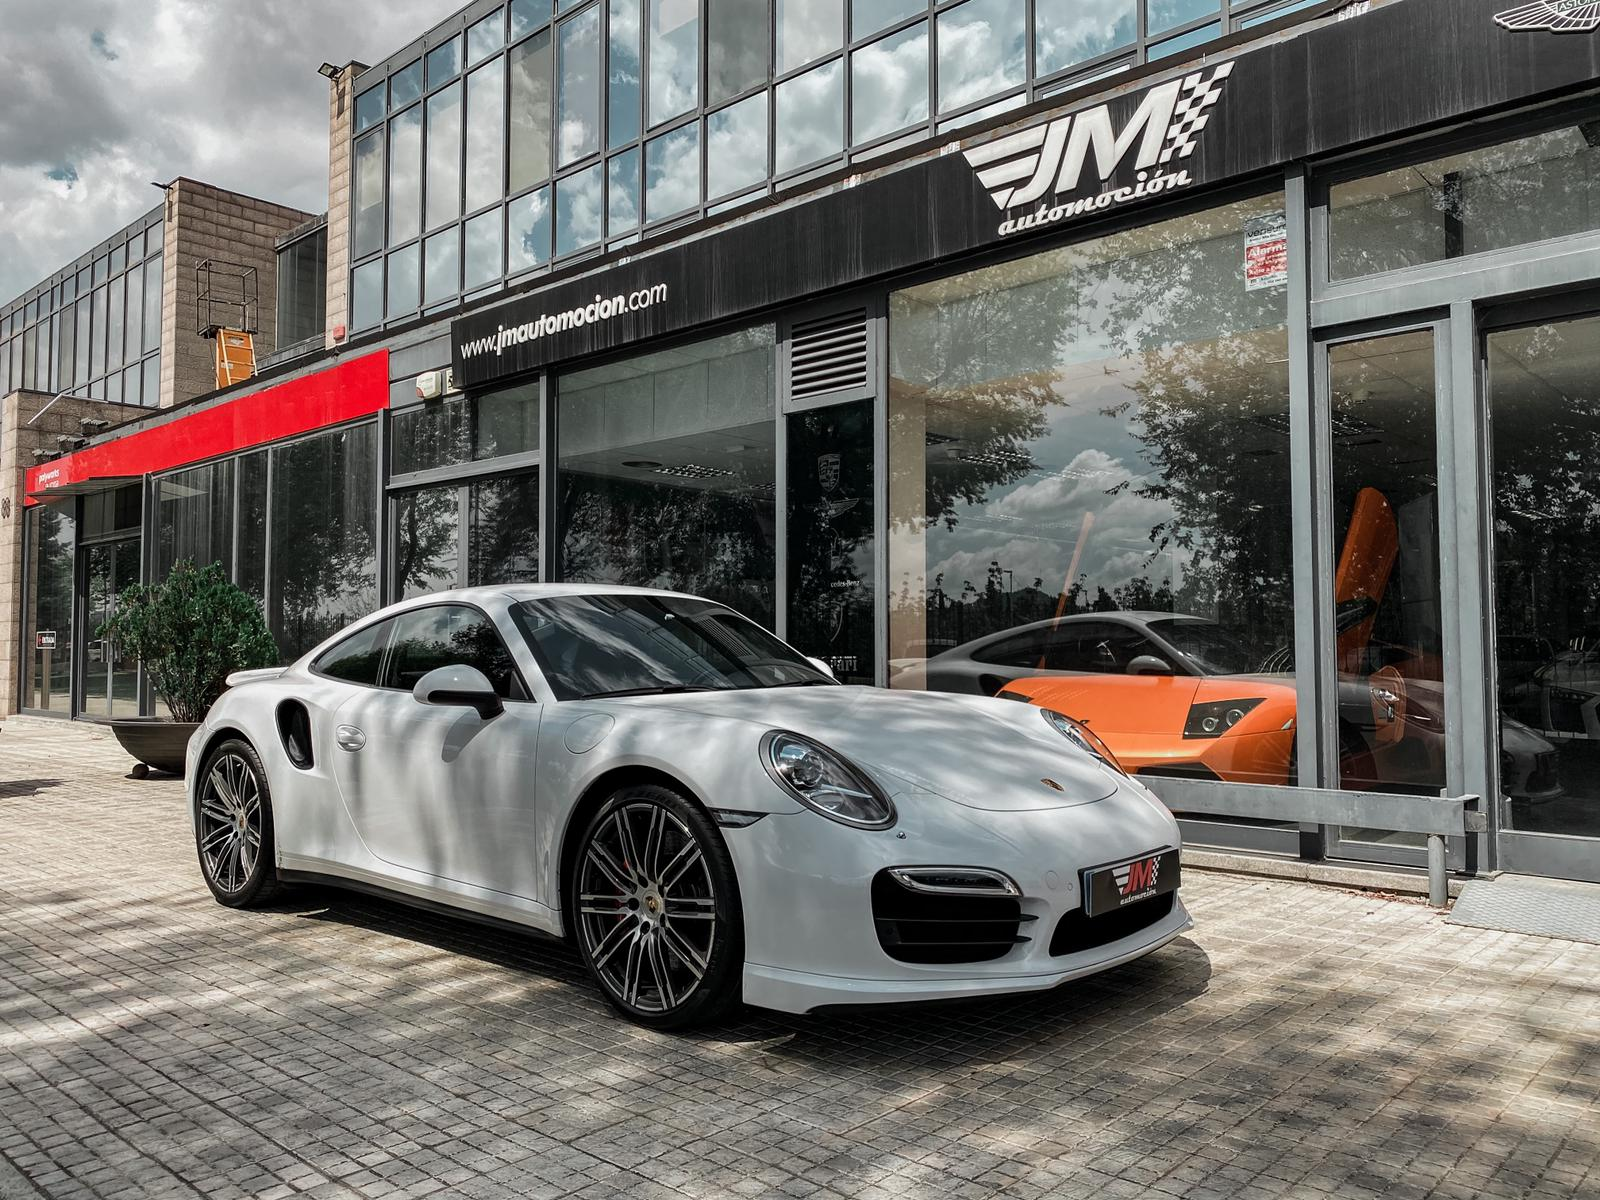 PORSCHE 911 991 TURBO COUPÉ PDK -PORSCHE APPROVED, IVA DEDUCIBLE-